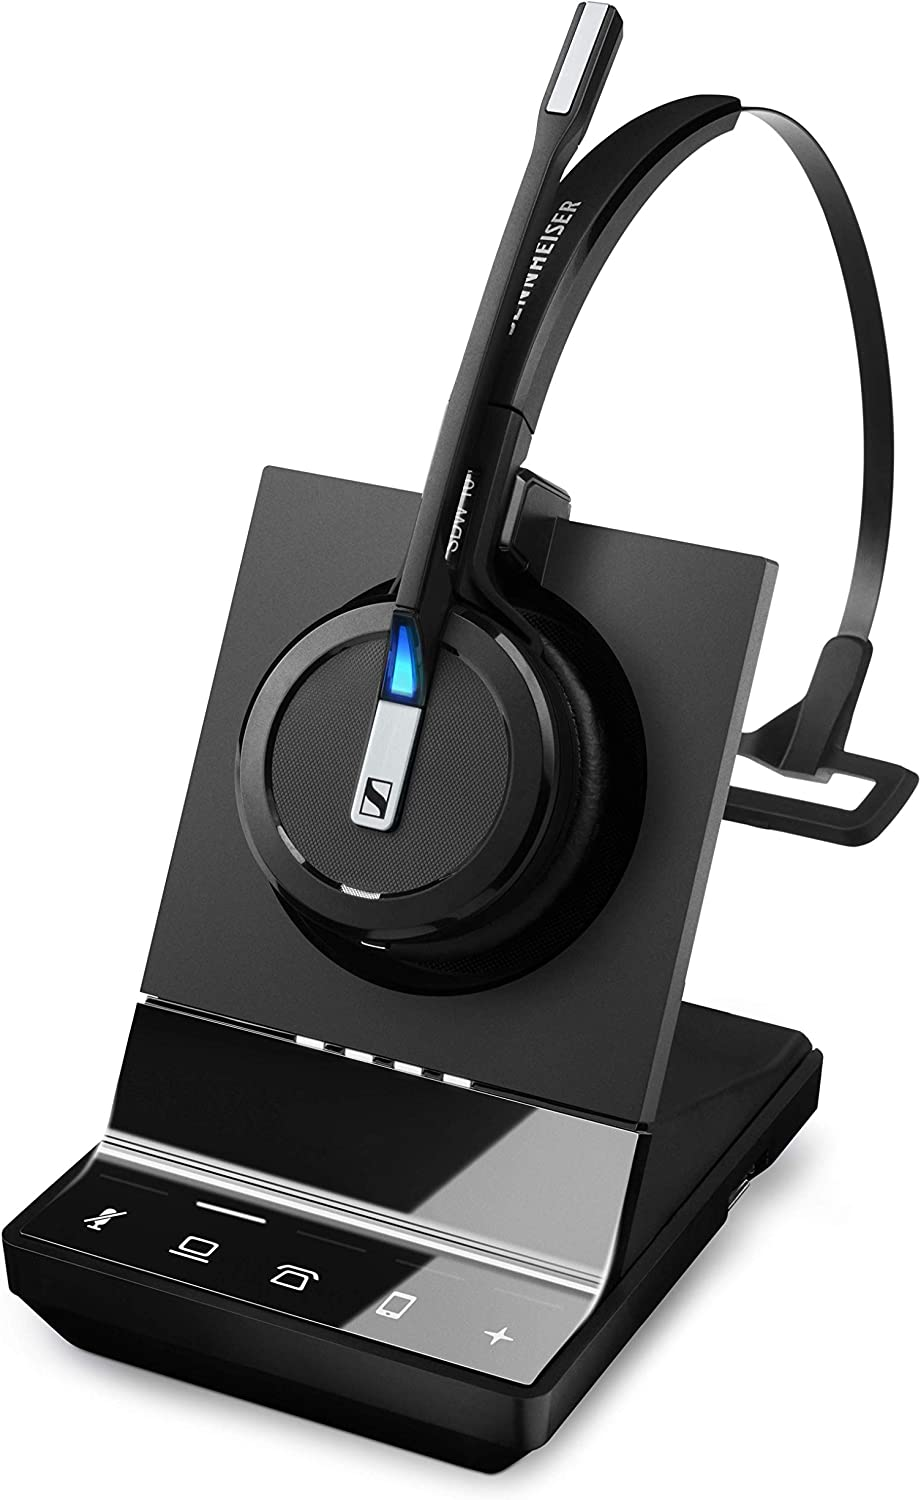 Sennheiser SDW 5015 (506592) Single-Sided Wireless DECT Super Wideband Headset for Desk Phone & Softphone/PC Connection Dual Microphone Ultra Noise-Canceling, Black